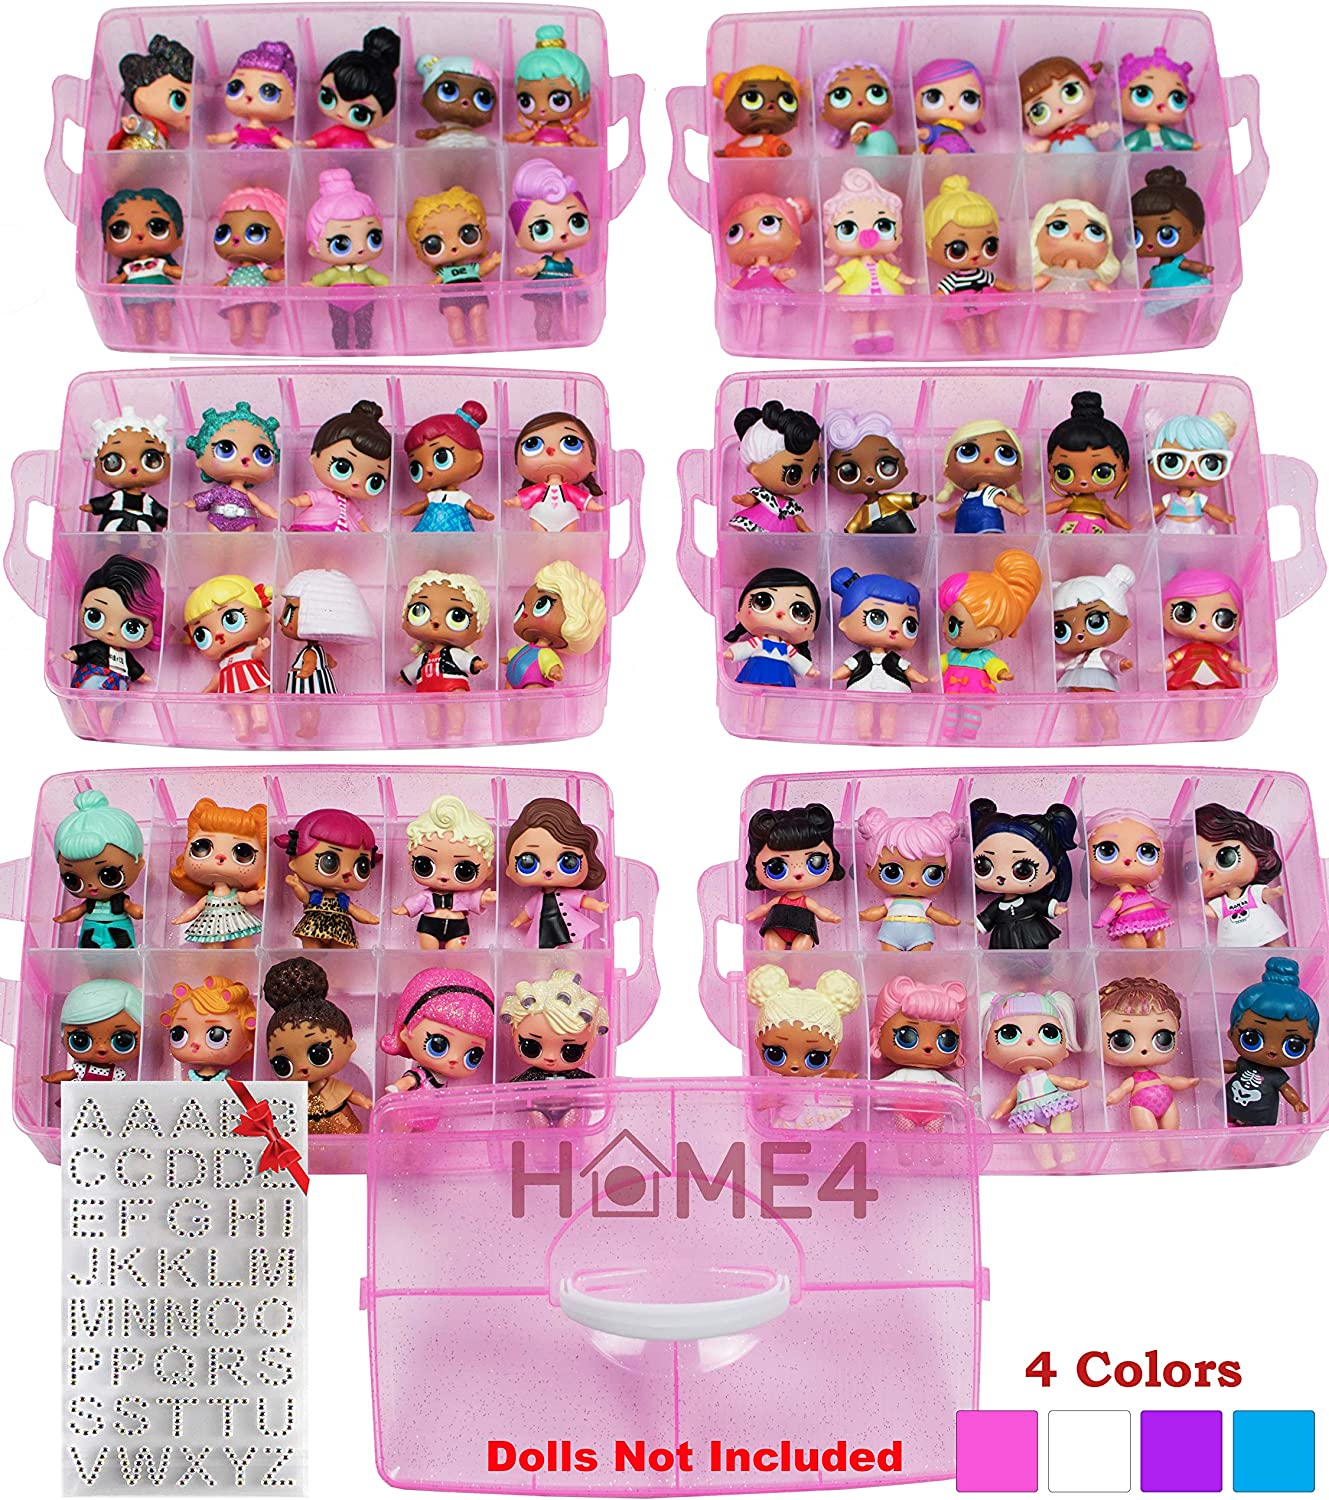 HOME4 LOL BPA Free Stackable Storage Container, Organizer Carrying Display Case, 6 Layers 60 Adjustable Compartments, Perfect for Small Toys, Dolls Not Included, Bonus Sticker (Pink Glitter Large)